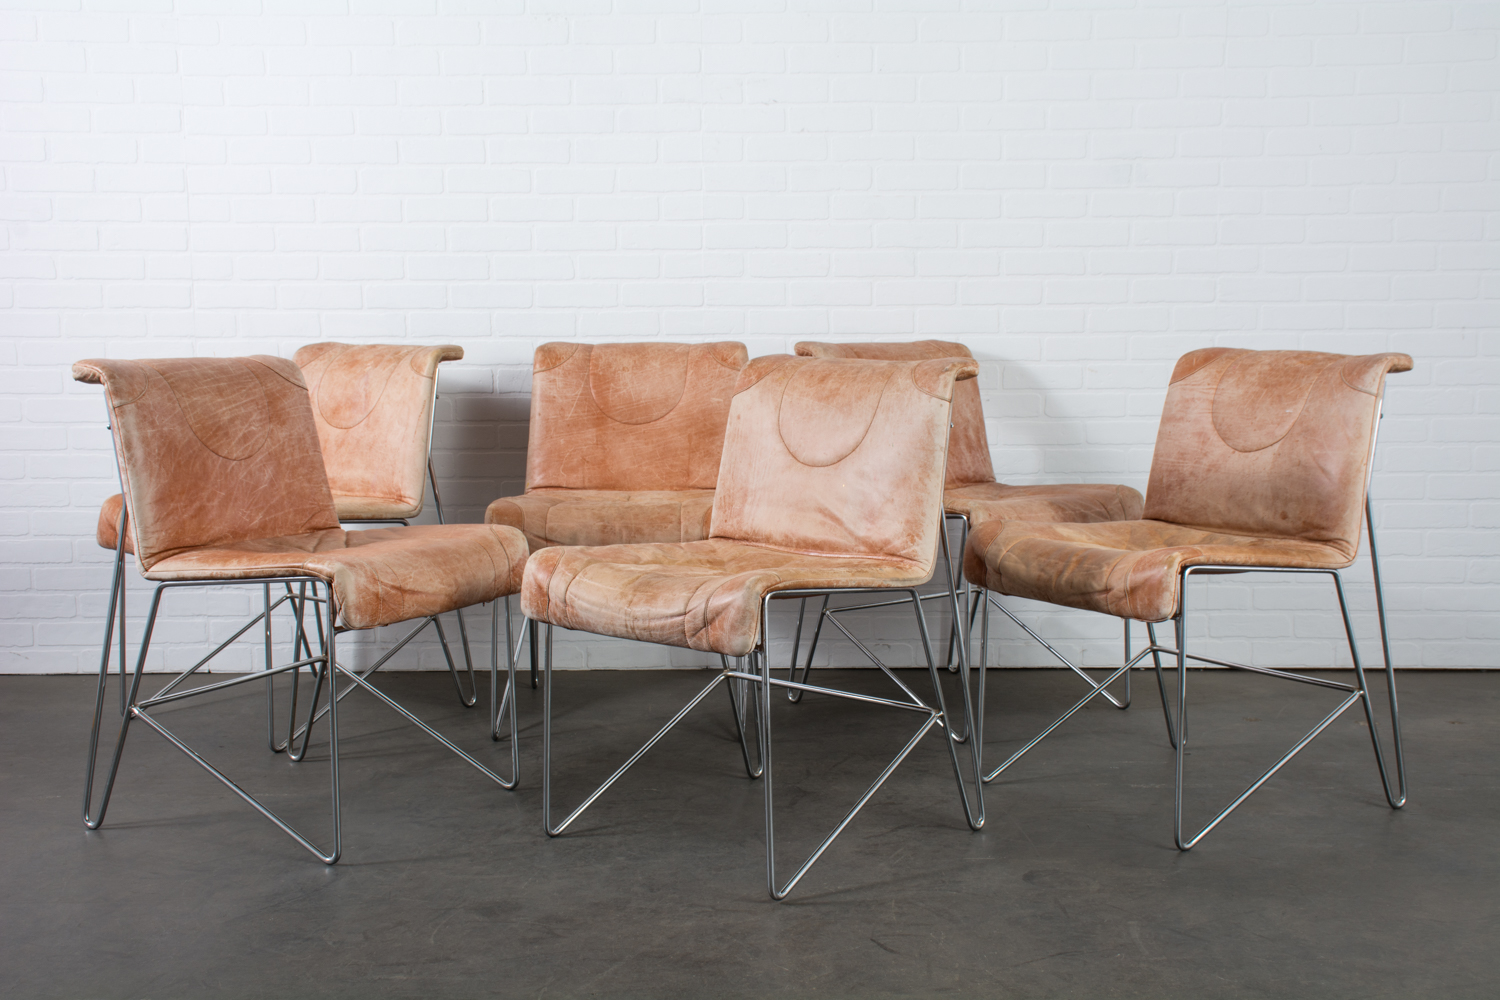 I4 Mariani Set Of Six Leather And Chrome Dining Chairs Italy 1970s Mid Century Modern Finds